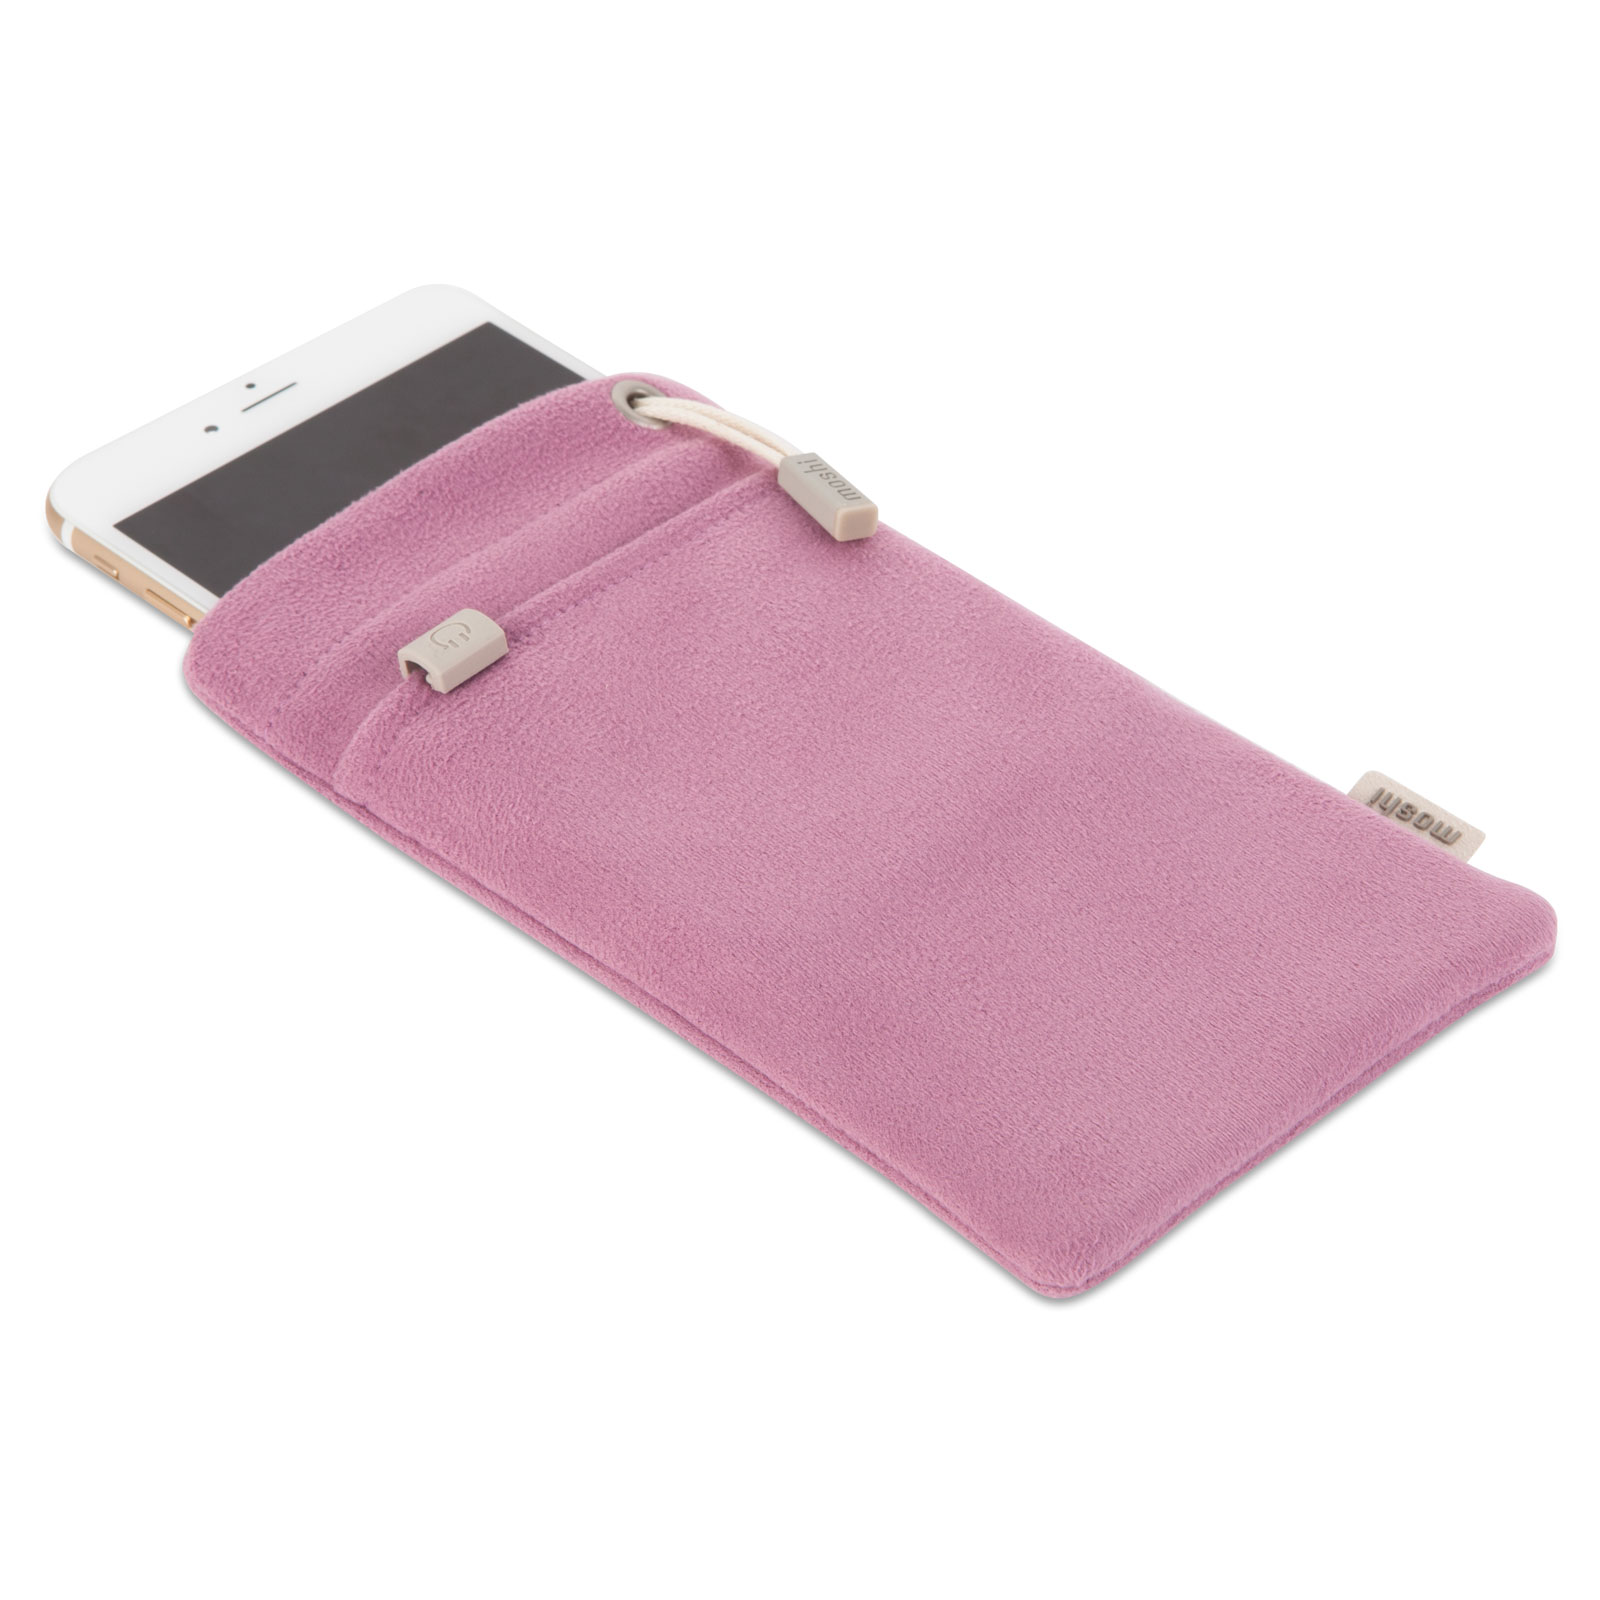 iPouch Plus Microfiber Carrying Case-2-thumbnail